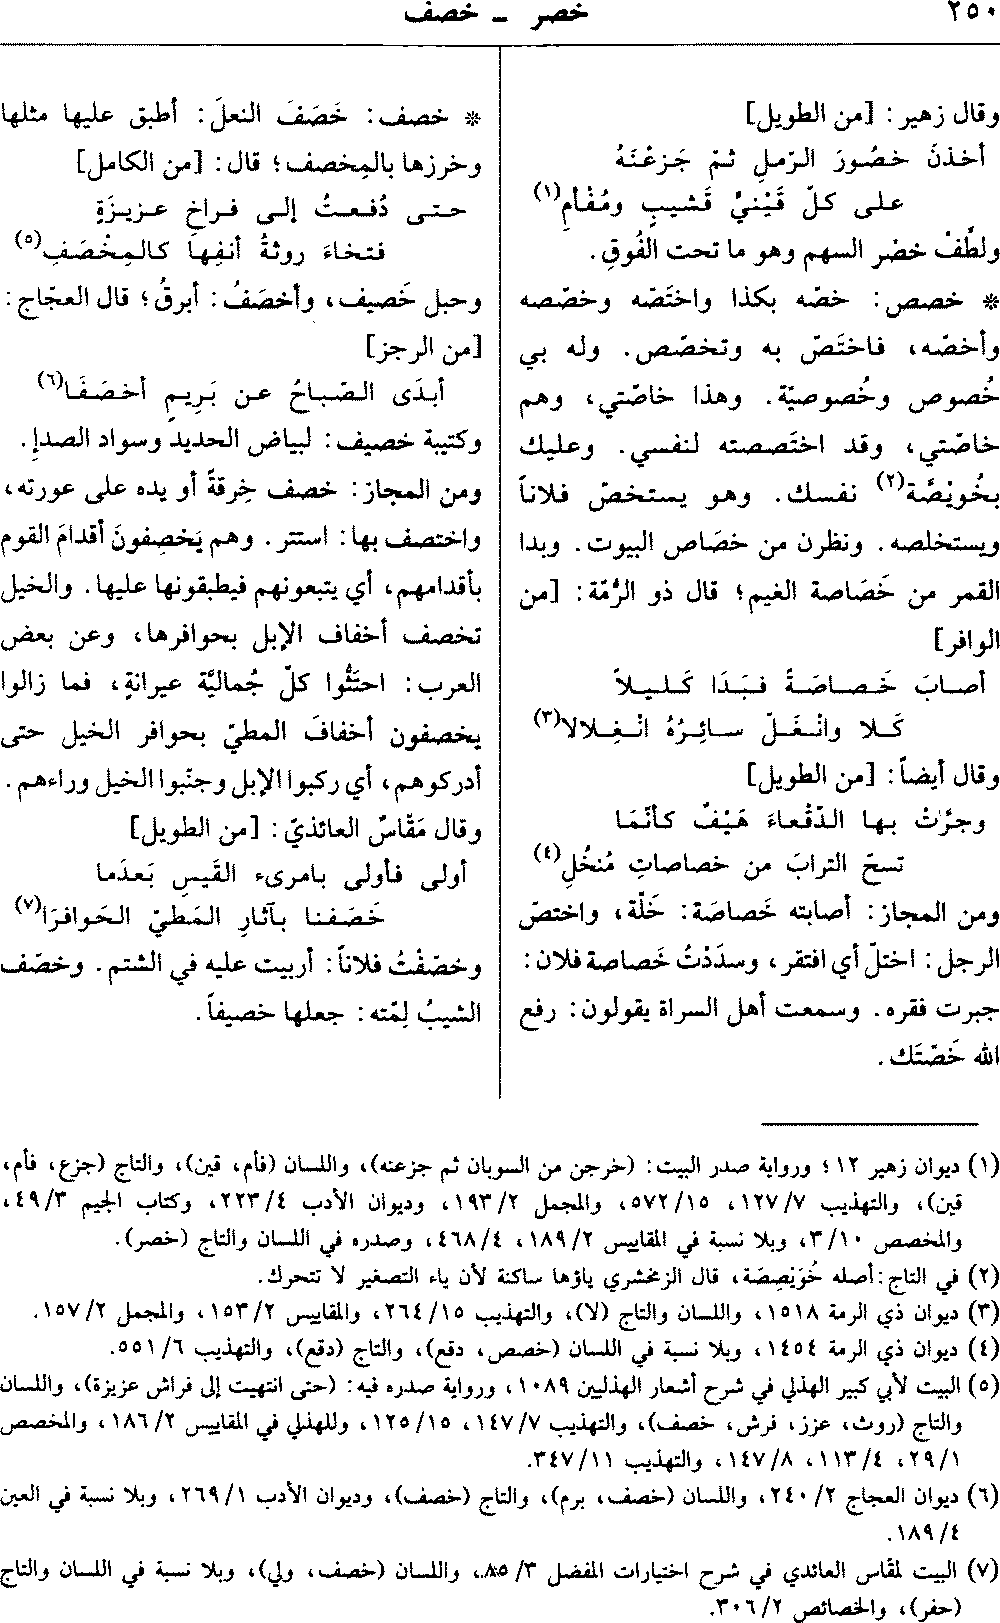 Qur'an Wiki - Learn, Study and Reflect